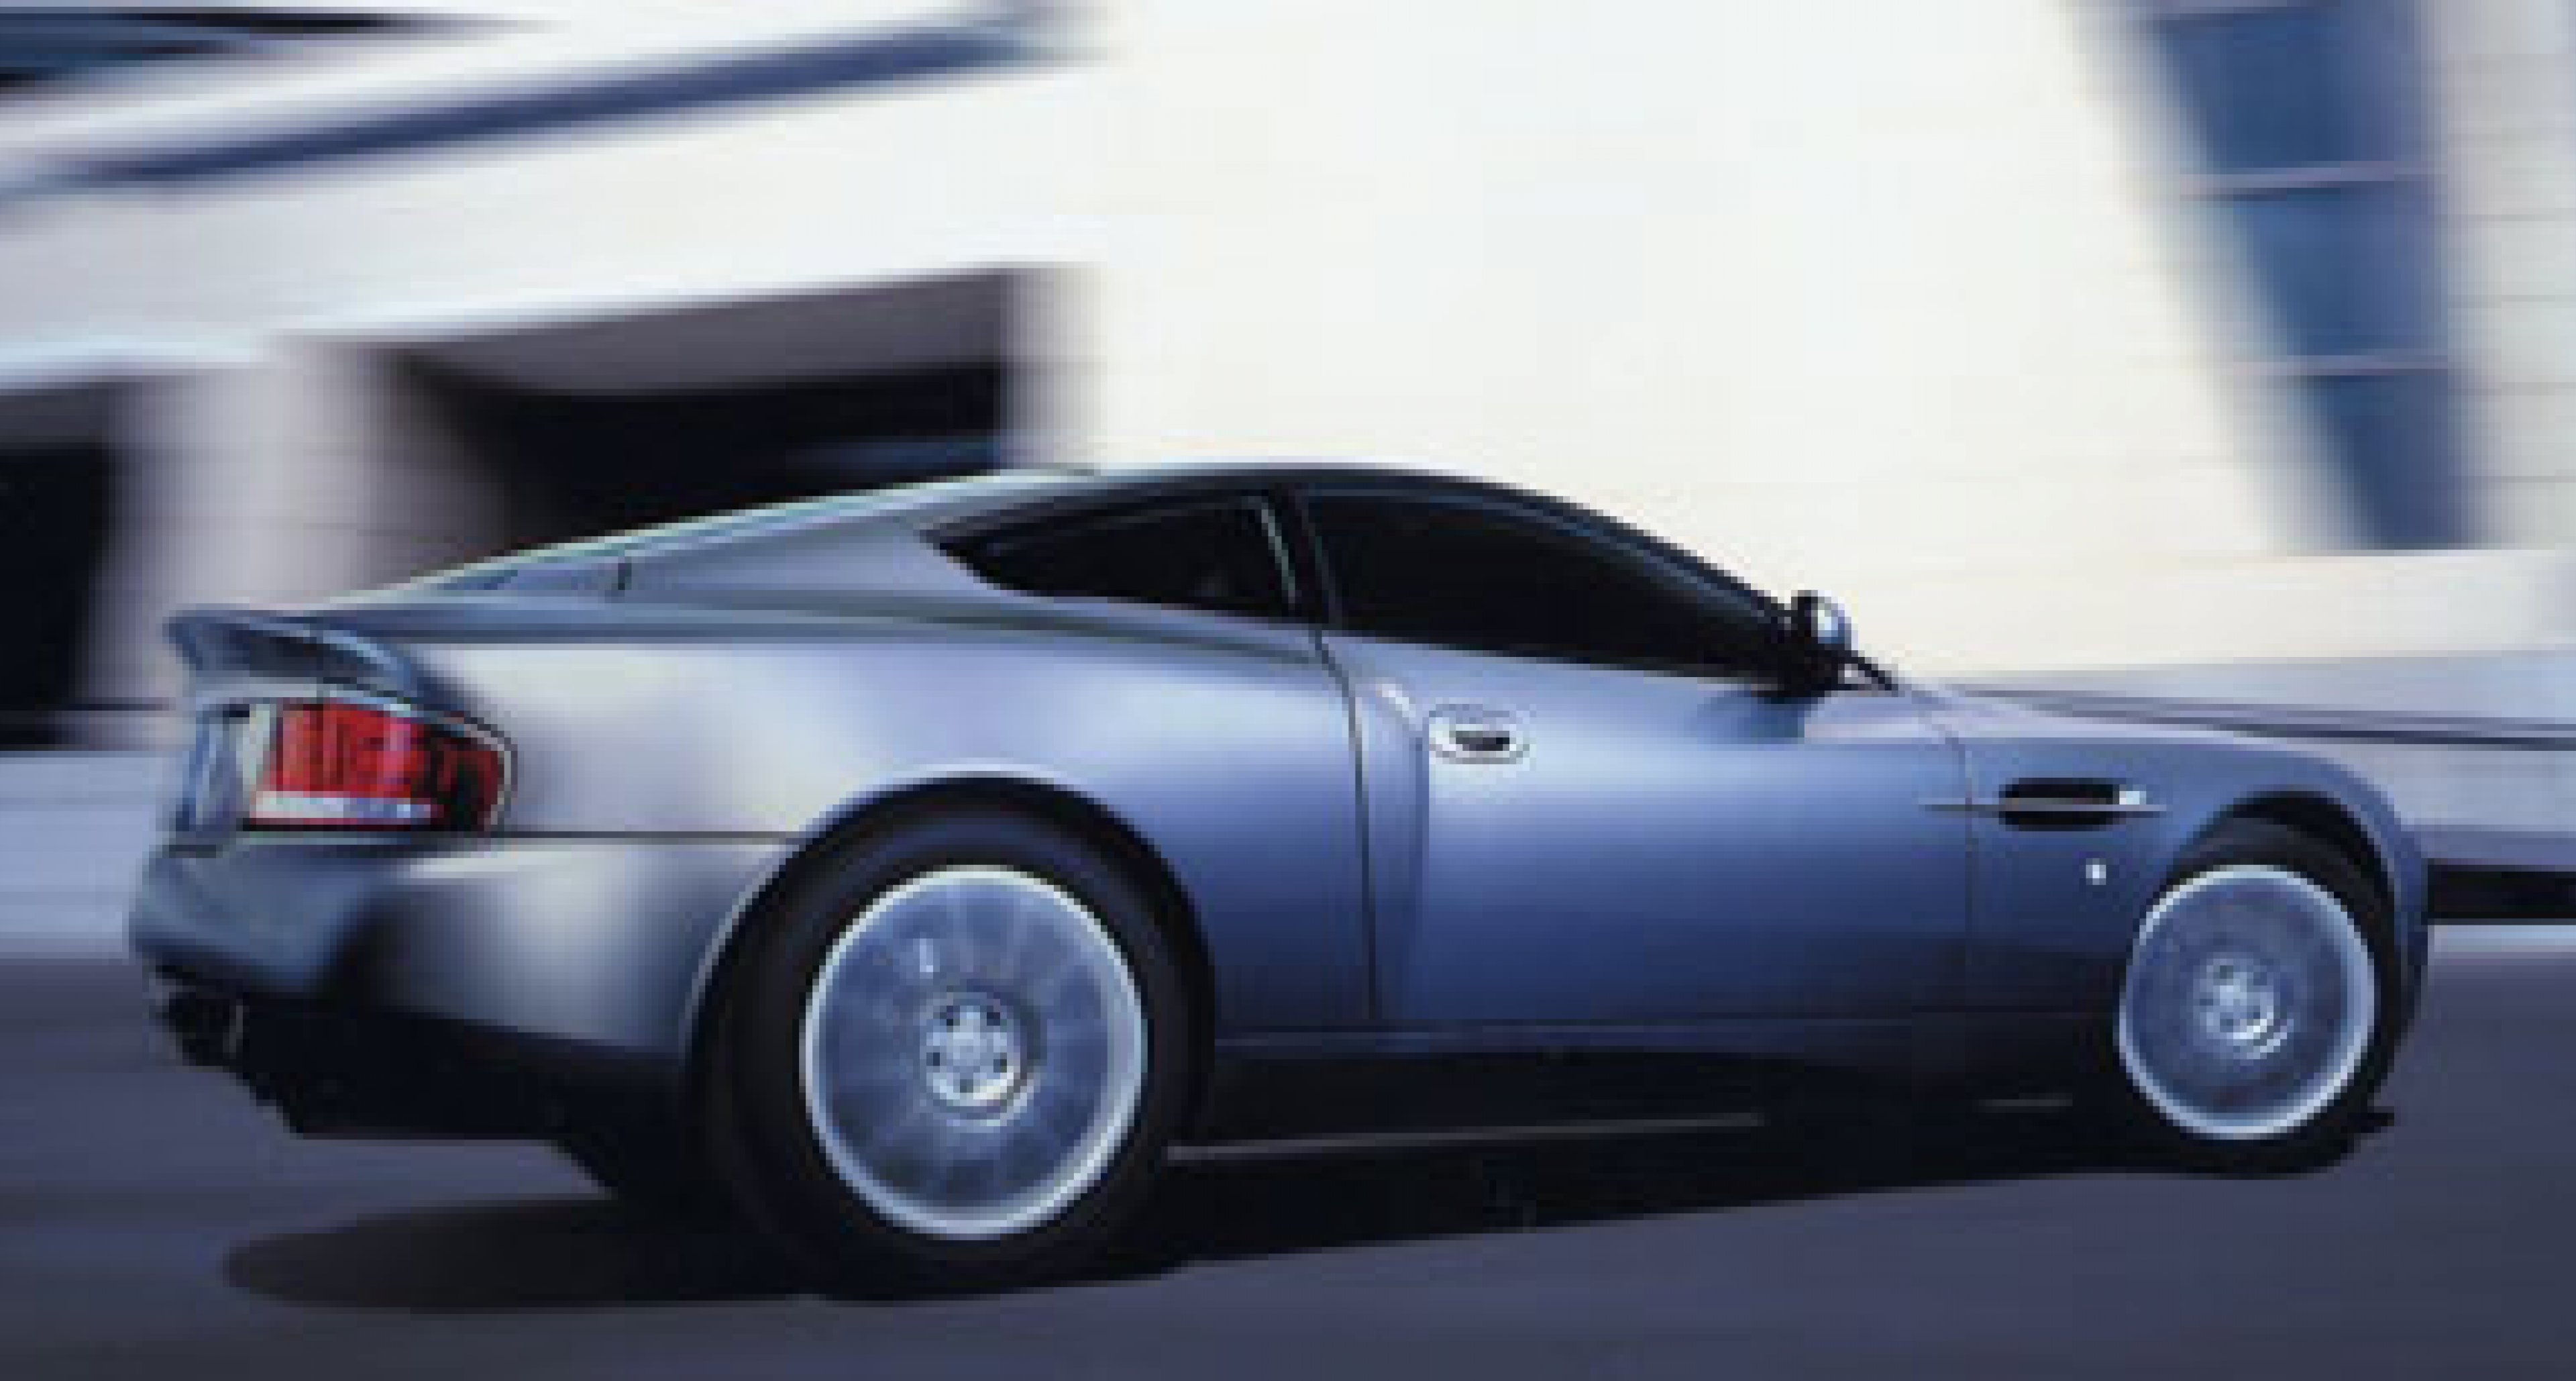 Aston Martin Vanquish - significant changes for 2004